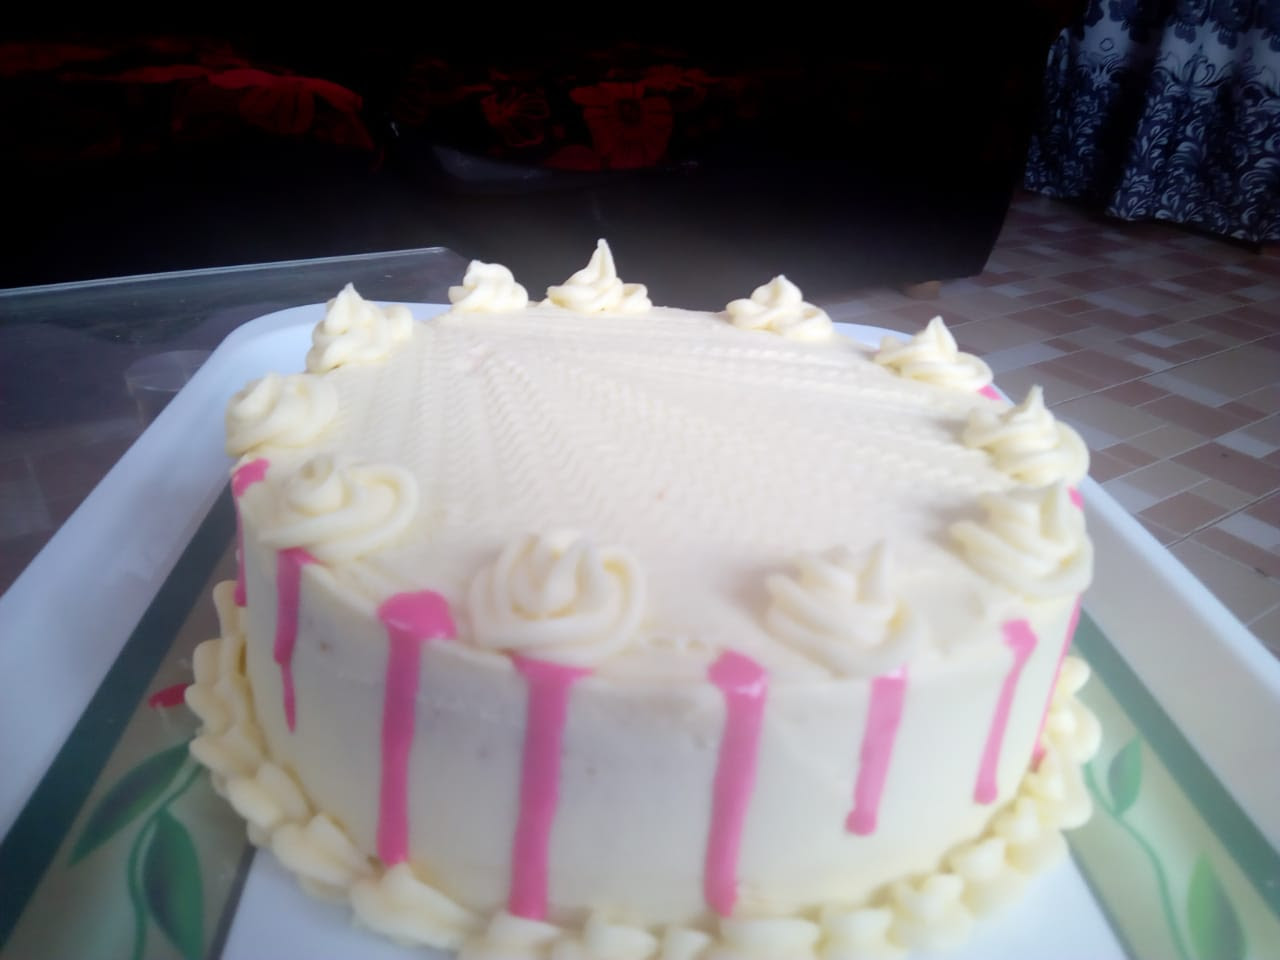 Wanjira_Purity_cakes_homemade